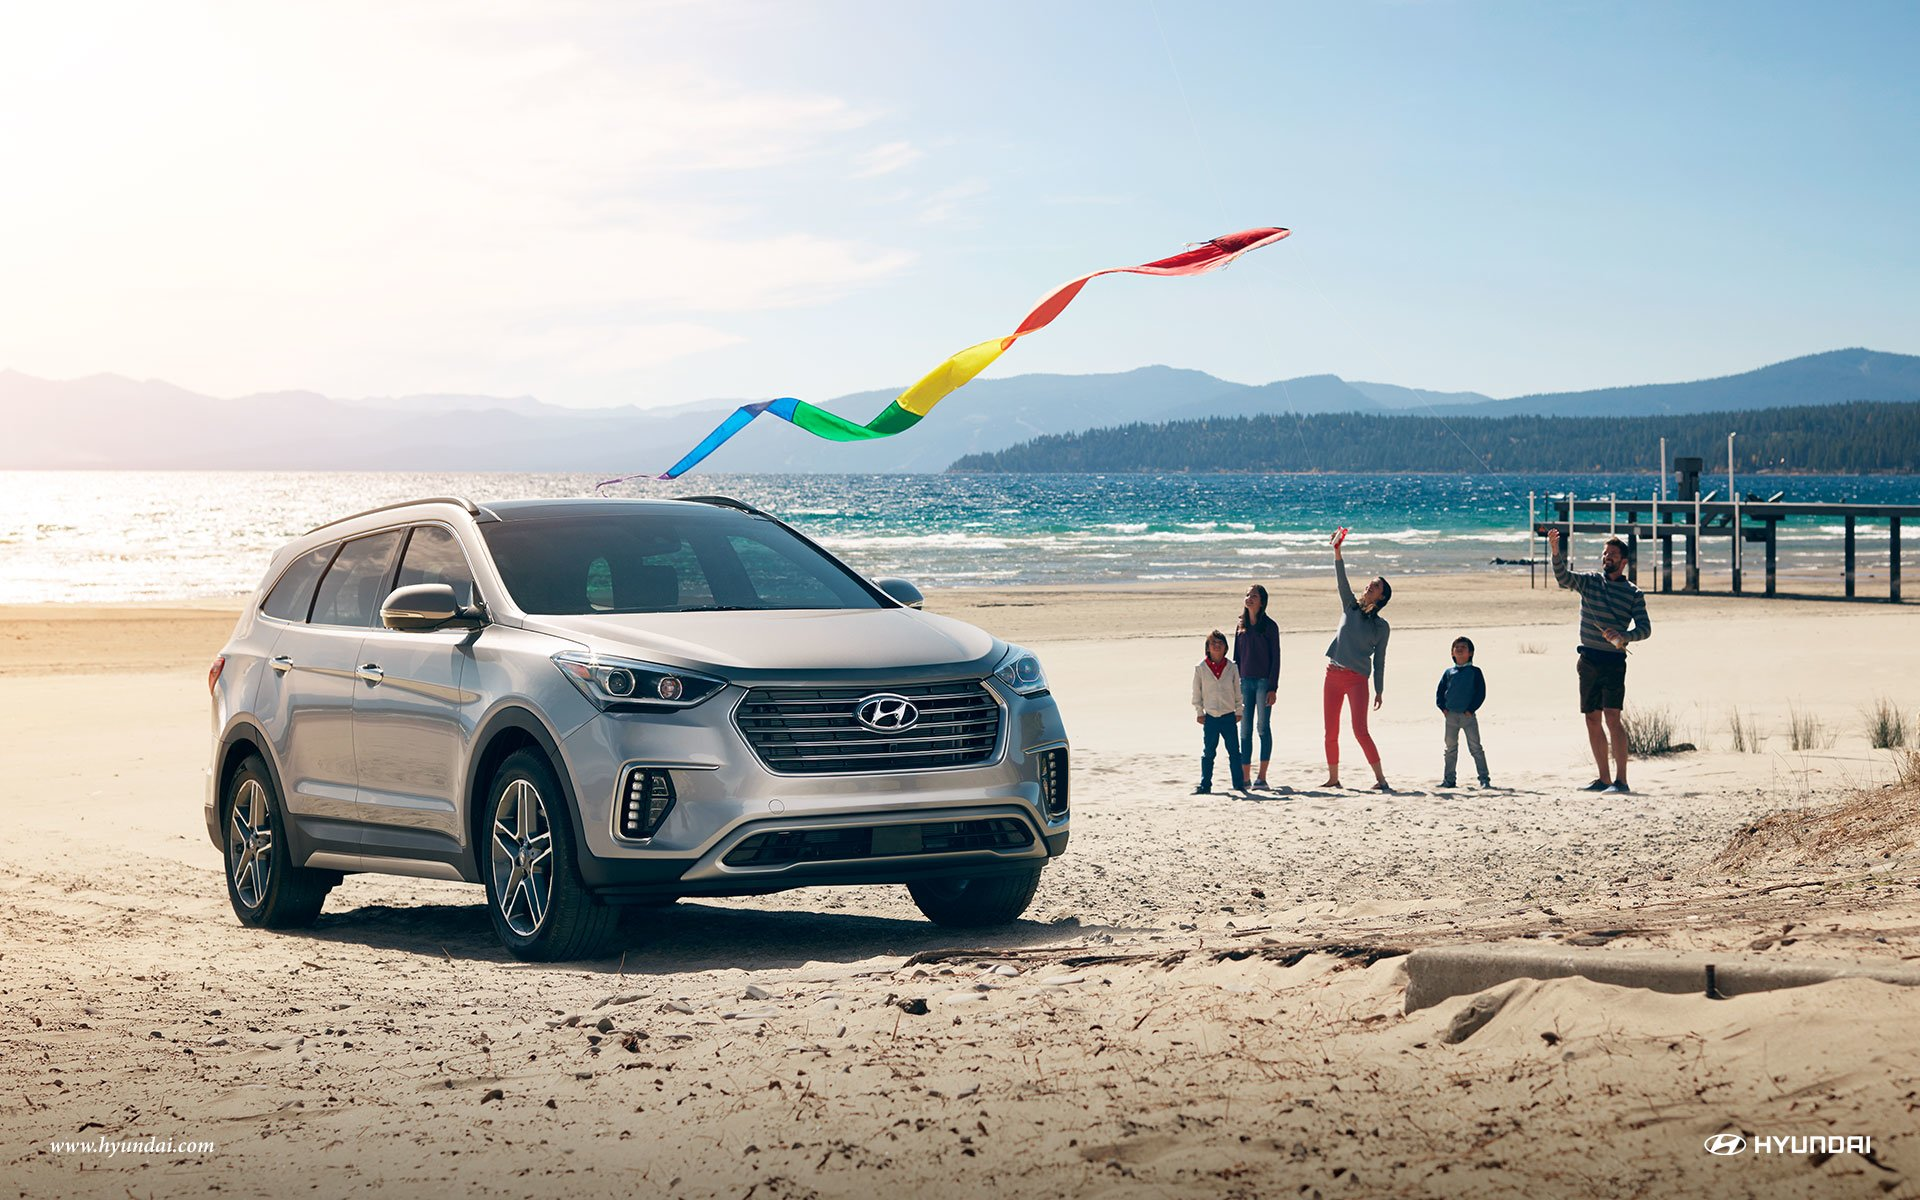 Hyundai Santa Fe Price Lease Council Bluffs Ia Rh Edwardshyundai Com  Pre Owned Vehicles Vehicle